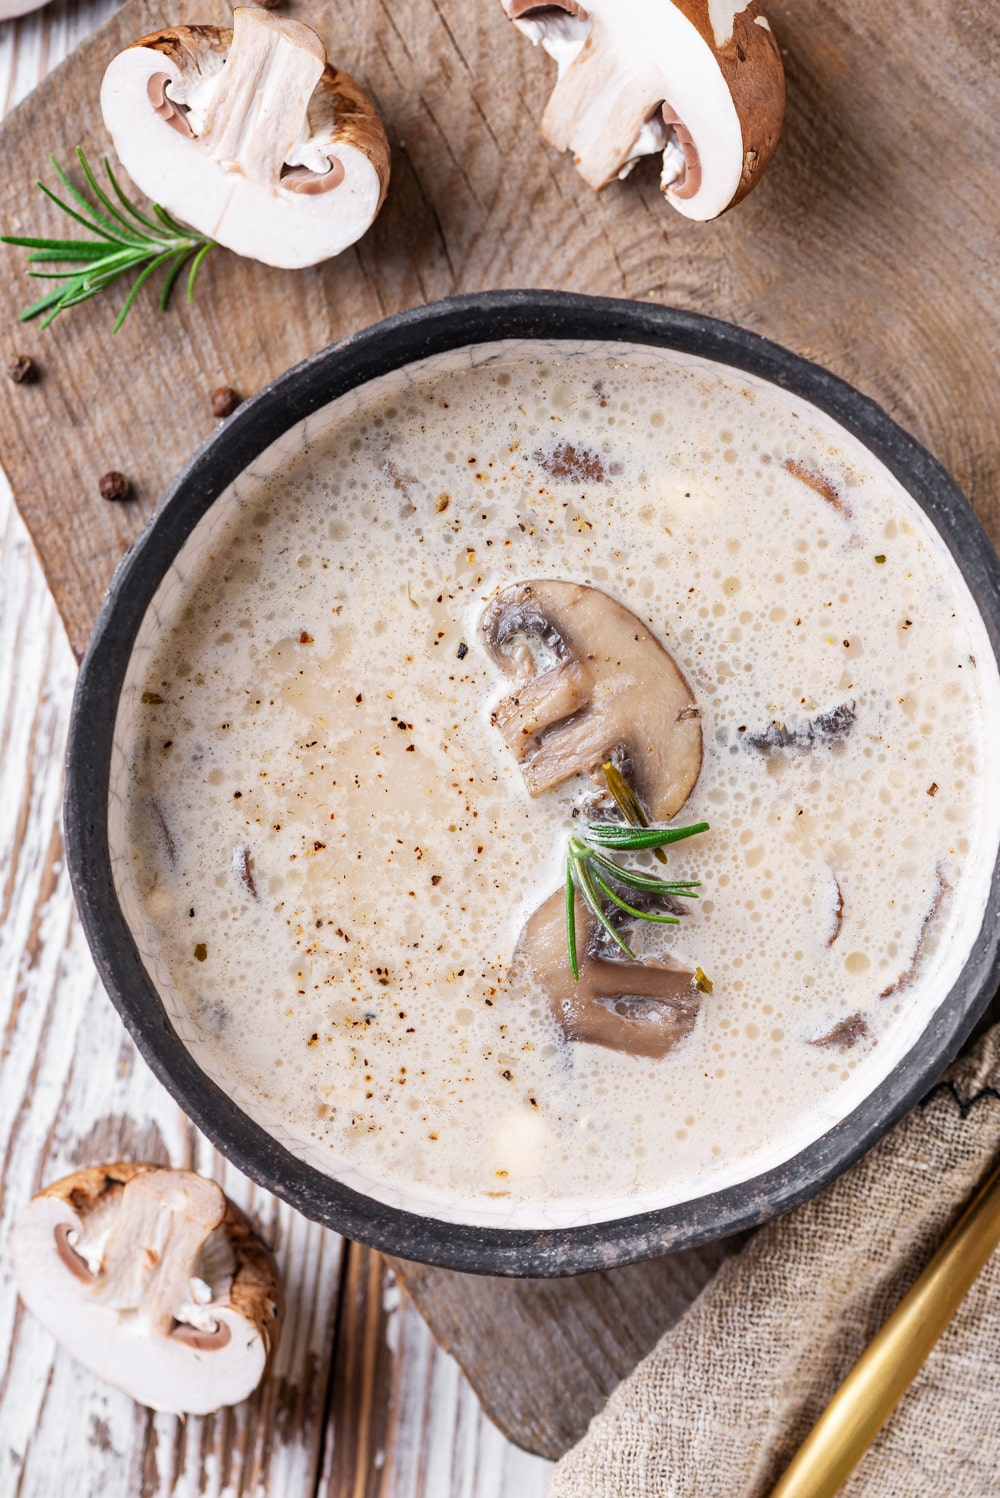 Keto Cream Of Mushroom Soup One Of The Best Soup Recipes For Keto